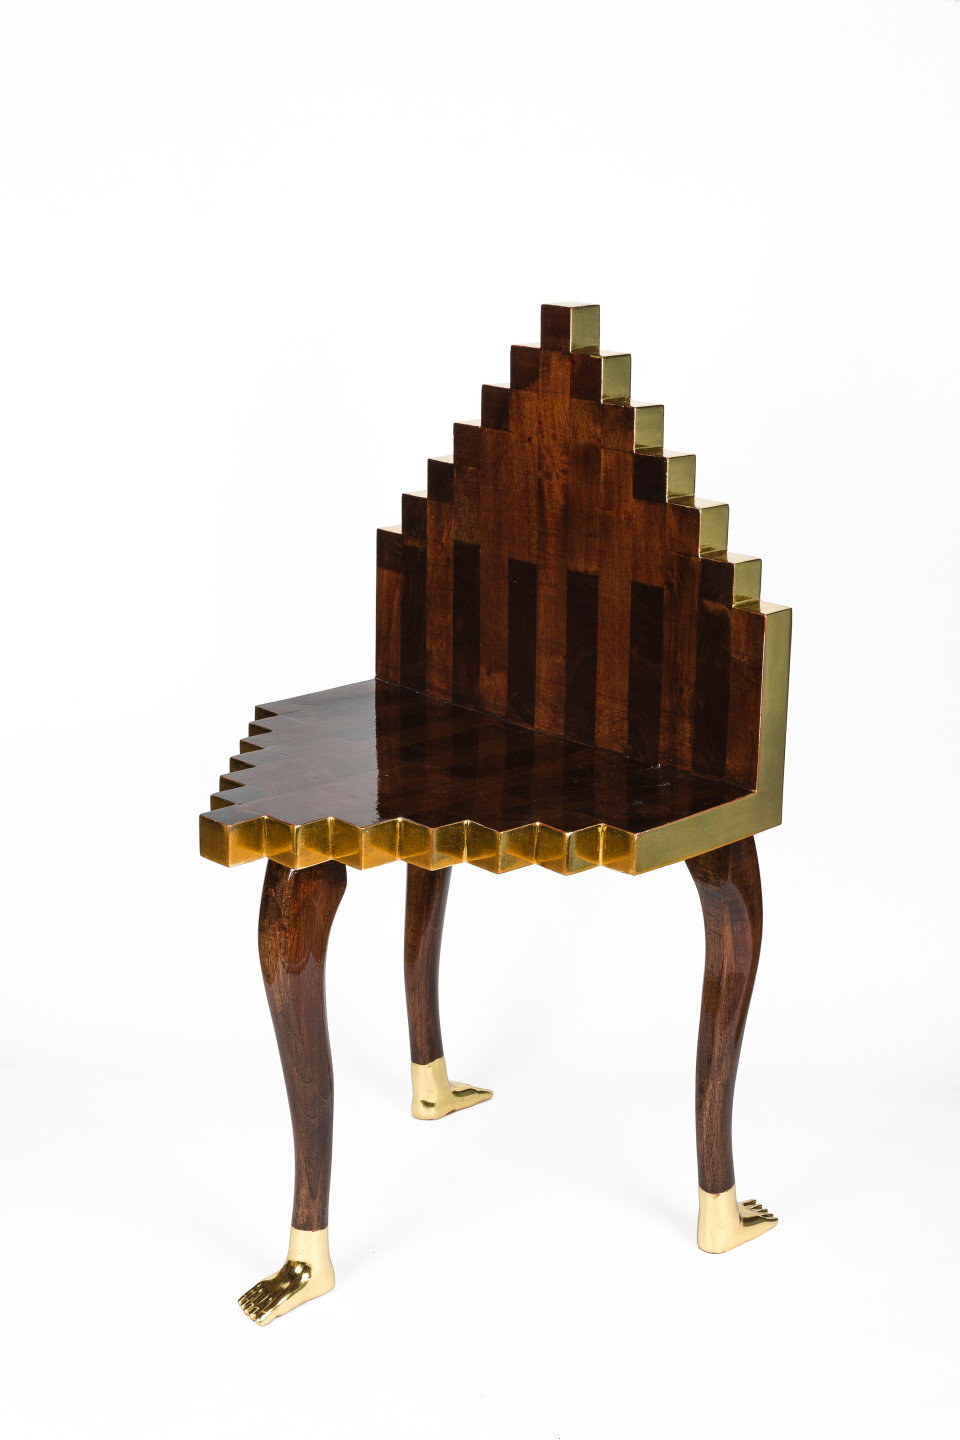 Image: Pedro Friedeberg  Chair for an Inca Princess, 2017  signed and dated  hand carved walnut and gold leaf  33 1/2 x 19 1/4 x 18 1/2 inches (85 x 49 x 47 cm)